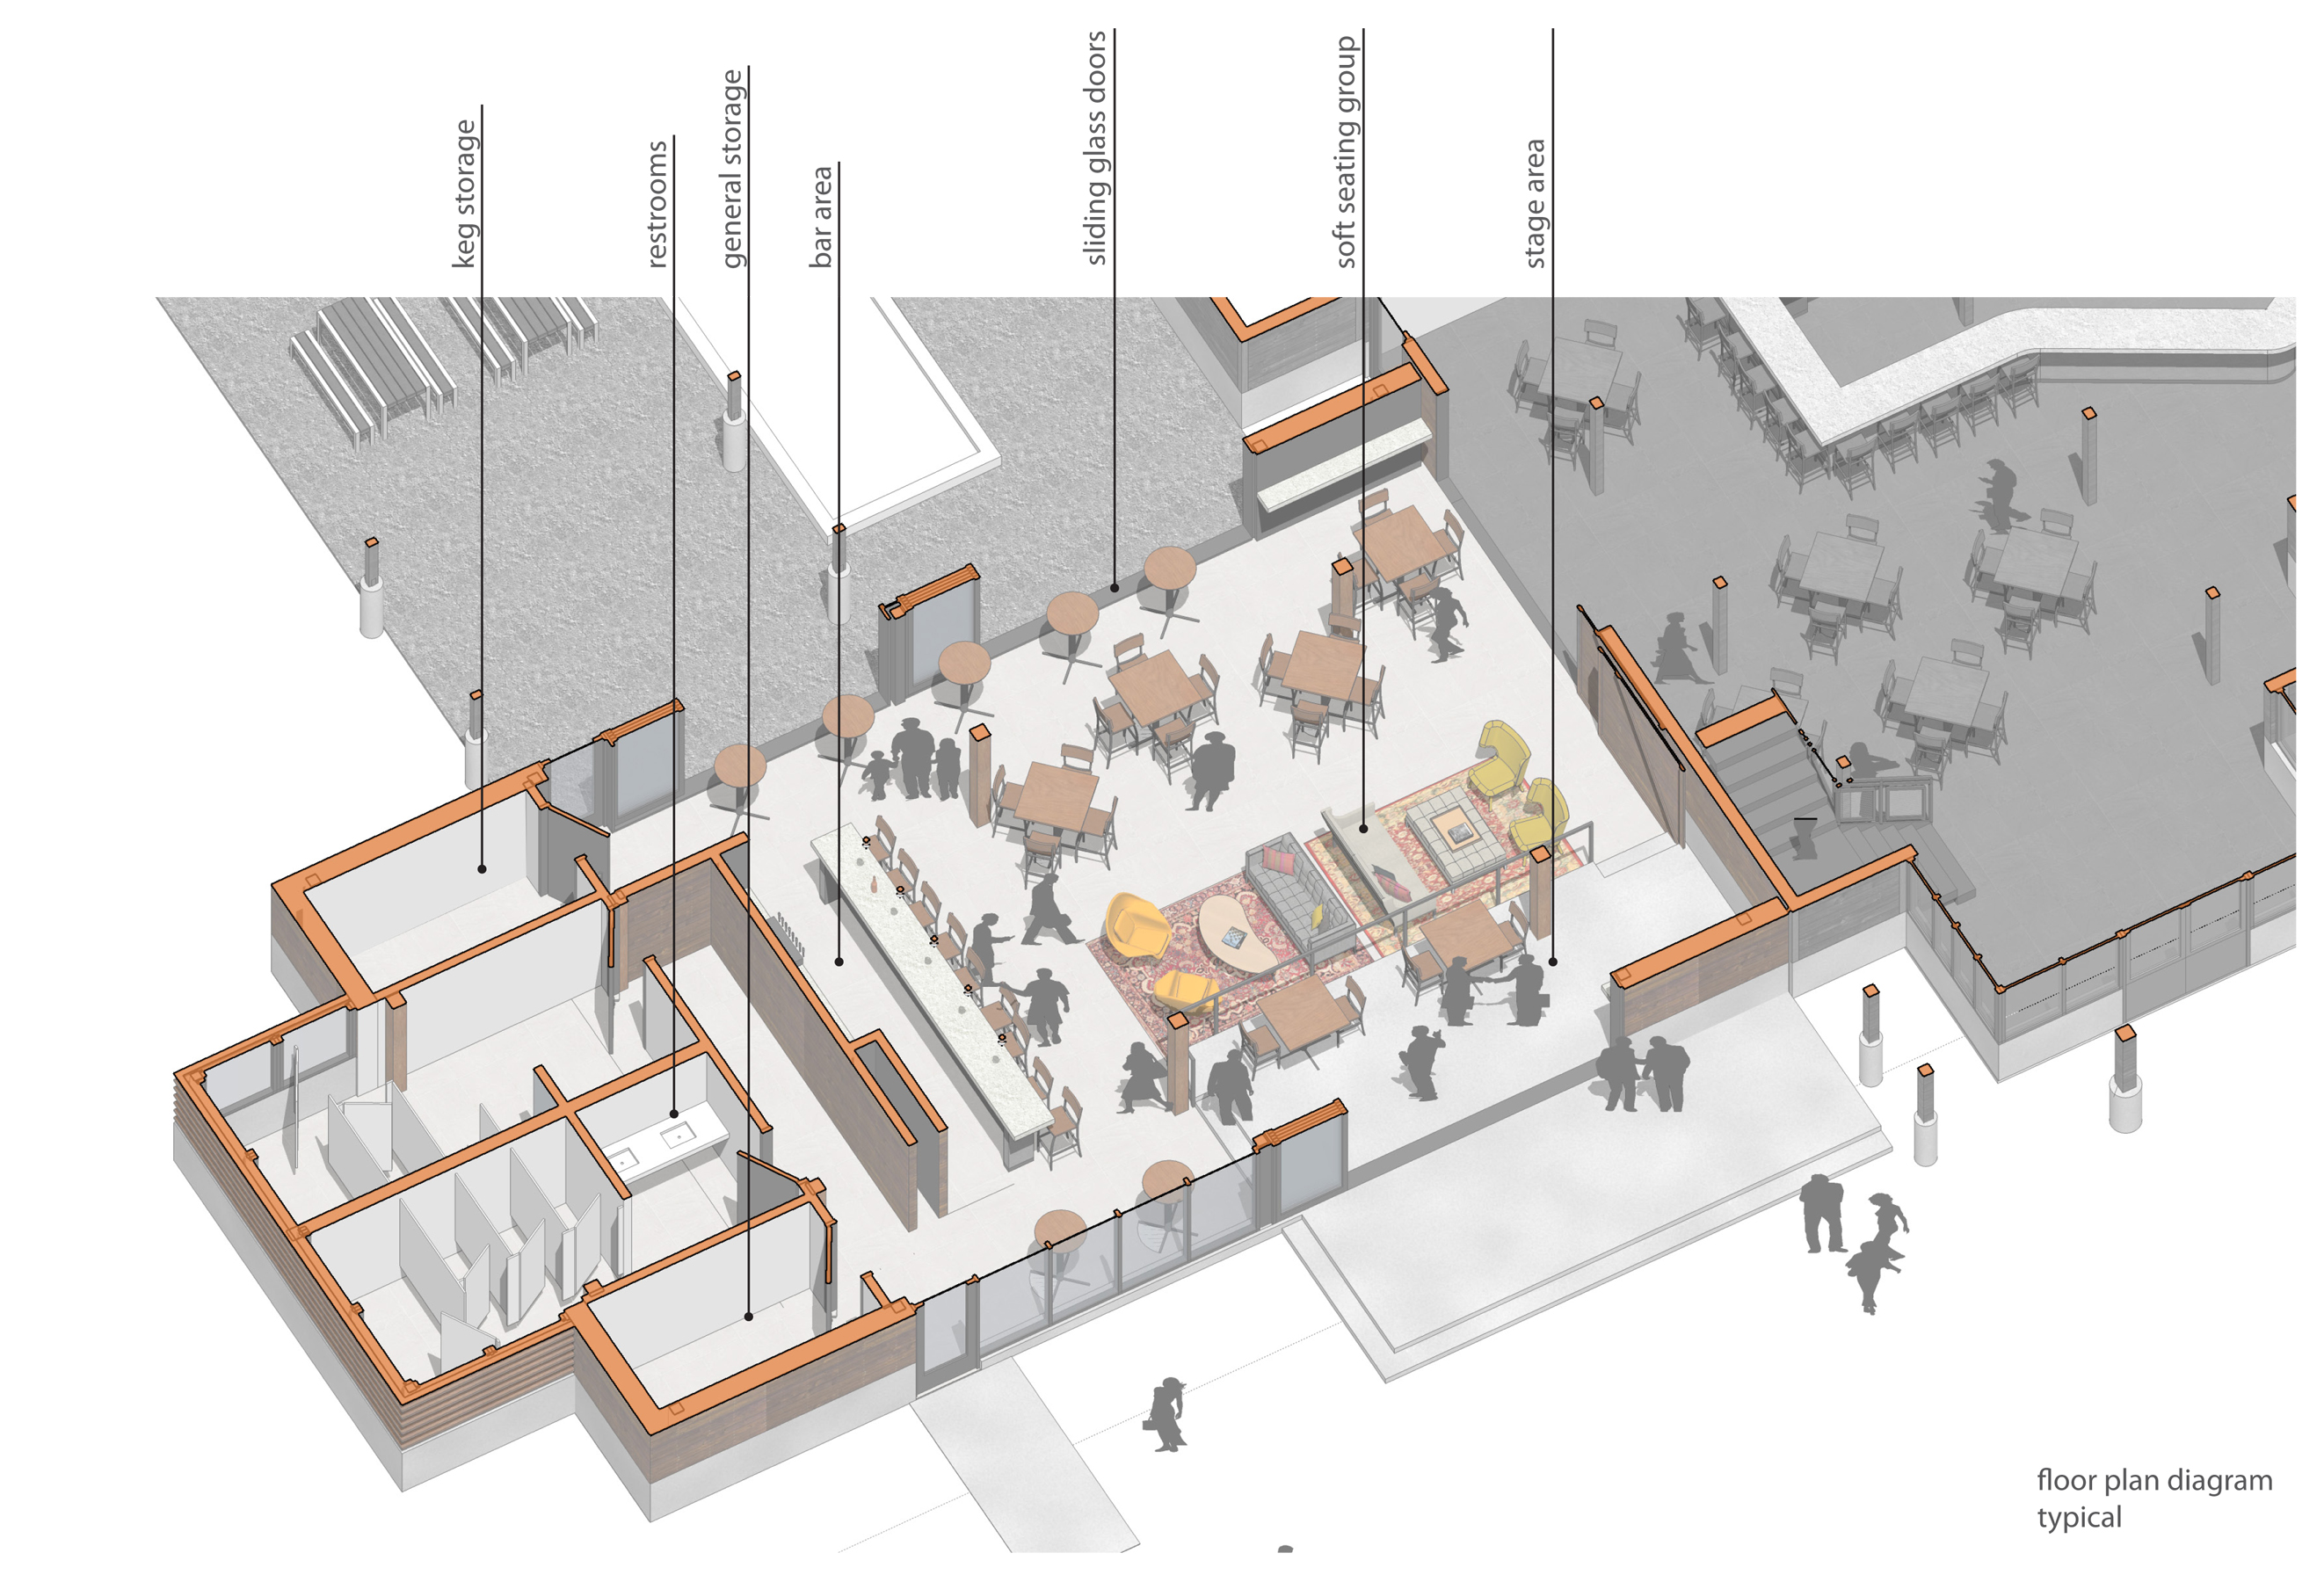 open studio architecture new belgium brewery liquid center expansion floor plan layout diagram osa